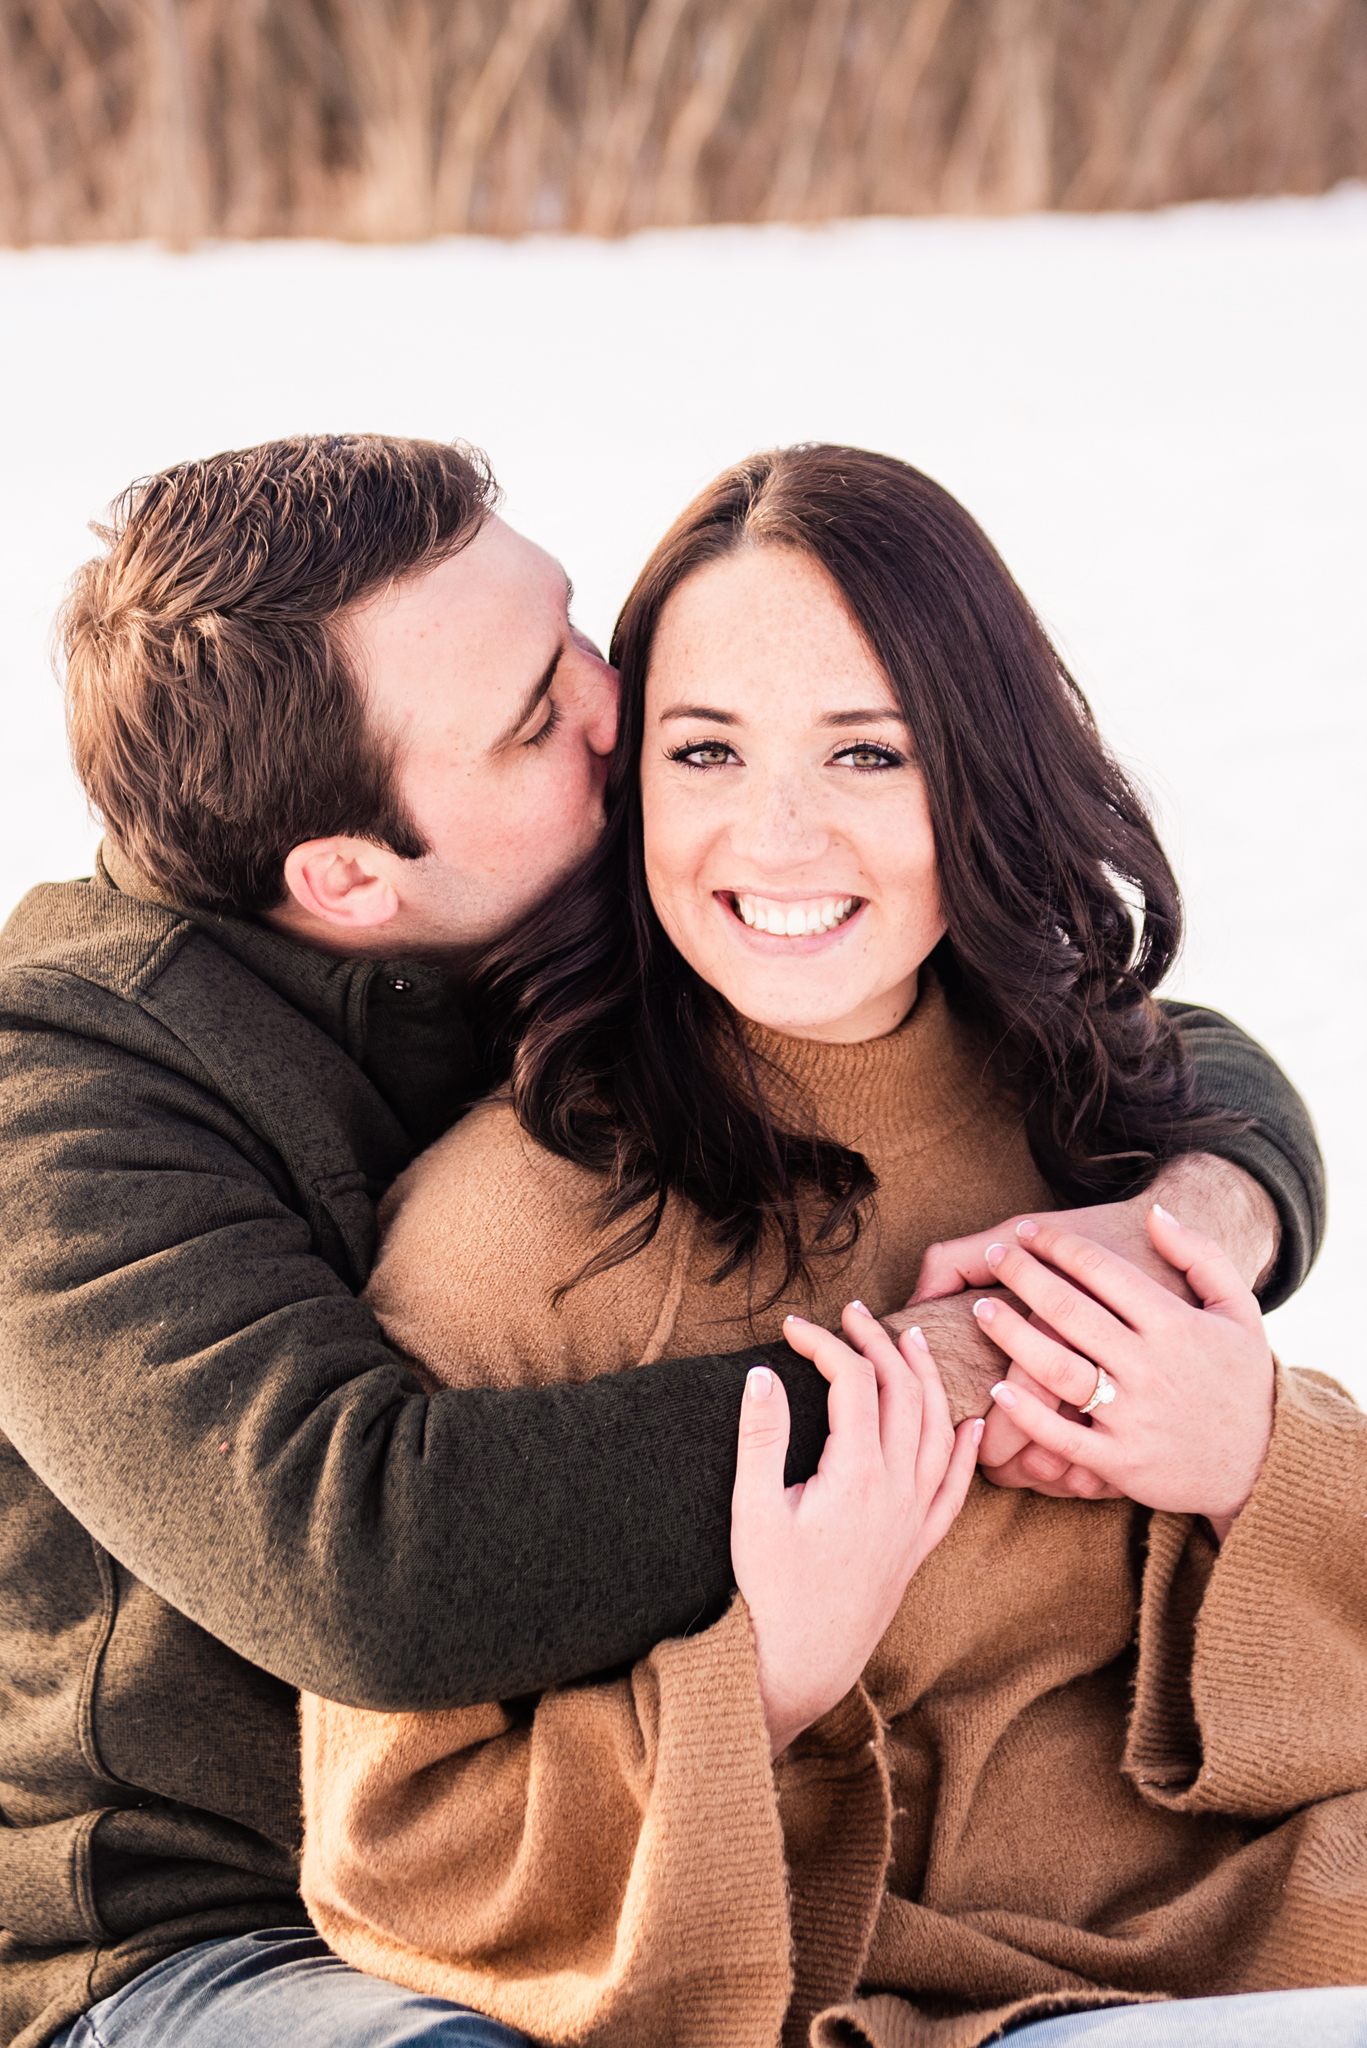 Fallbrook_Central_NY_Engagement_Session_JILL_STUDIO_Rochester_NY_Photographer_DSC_4835.jpg